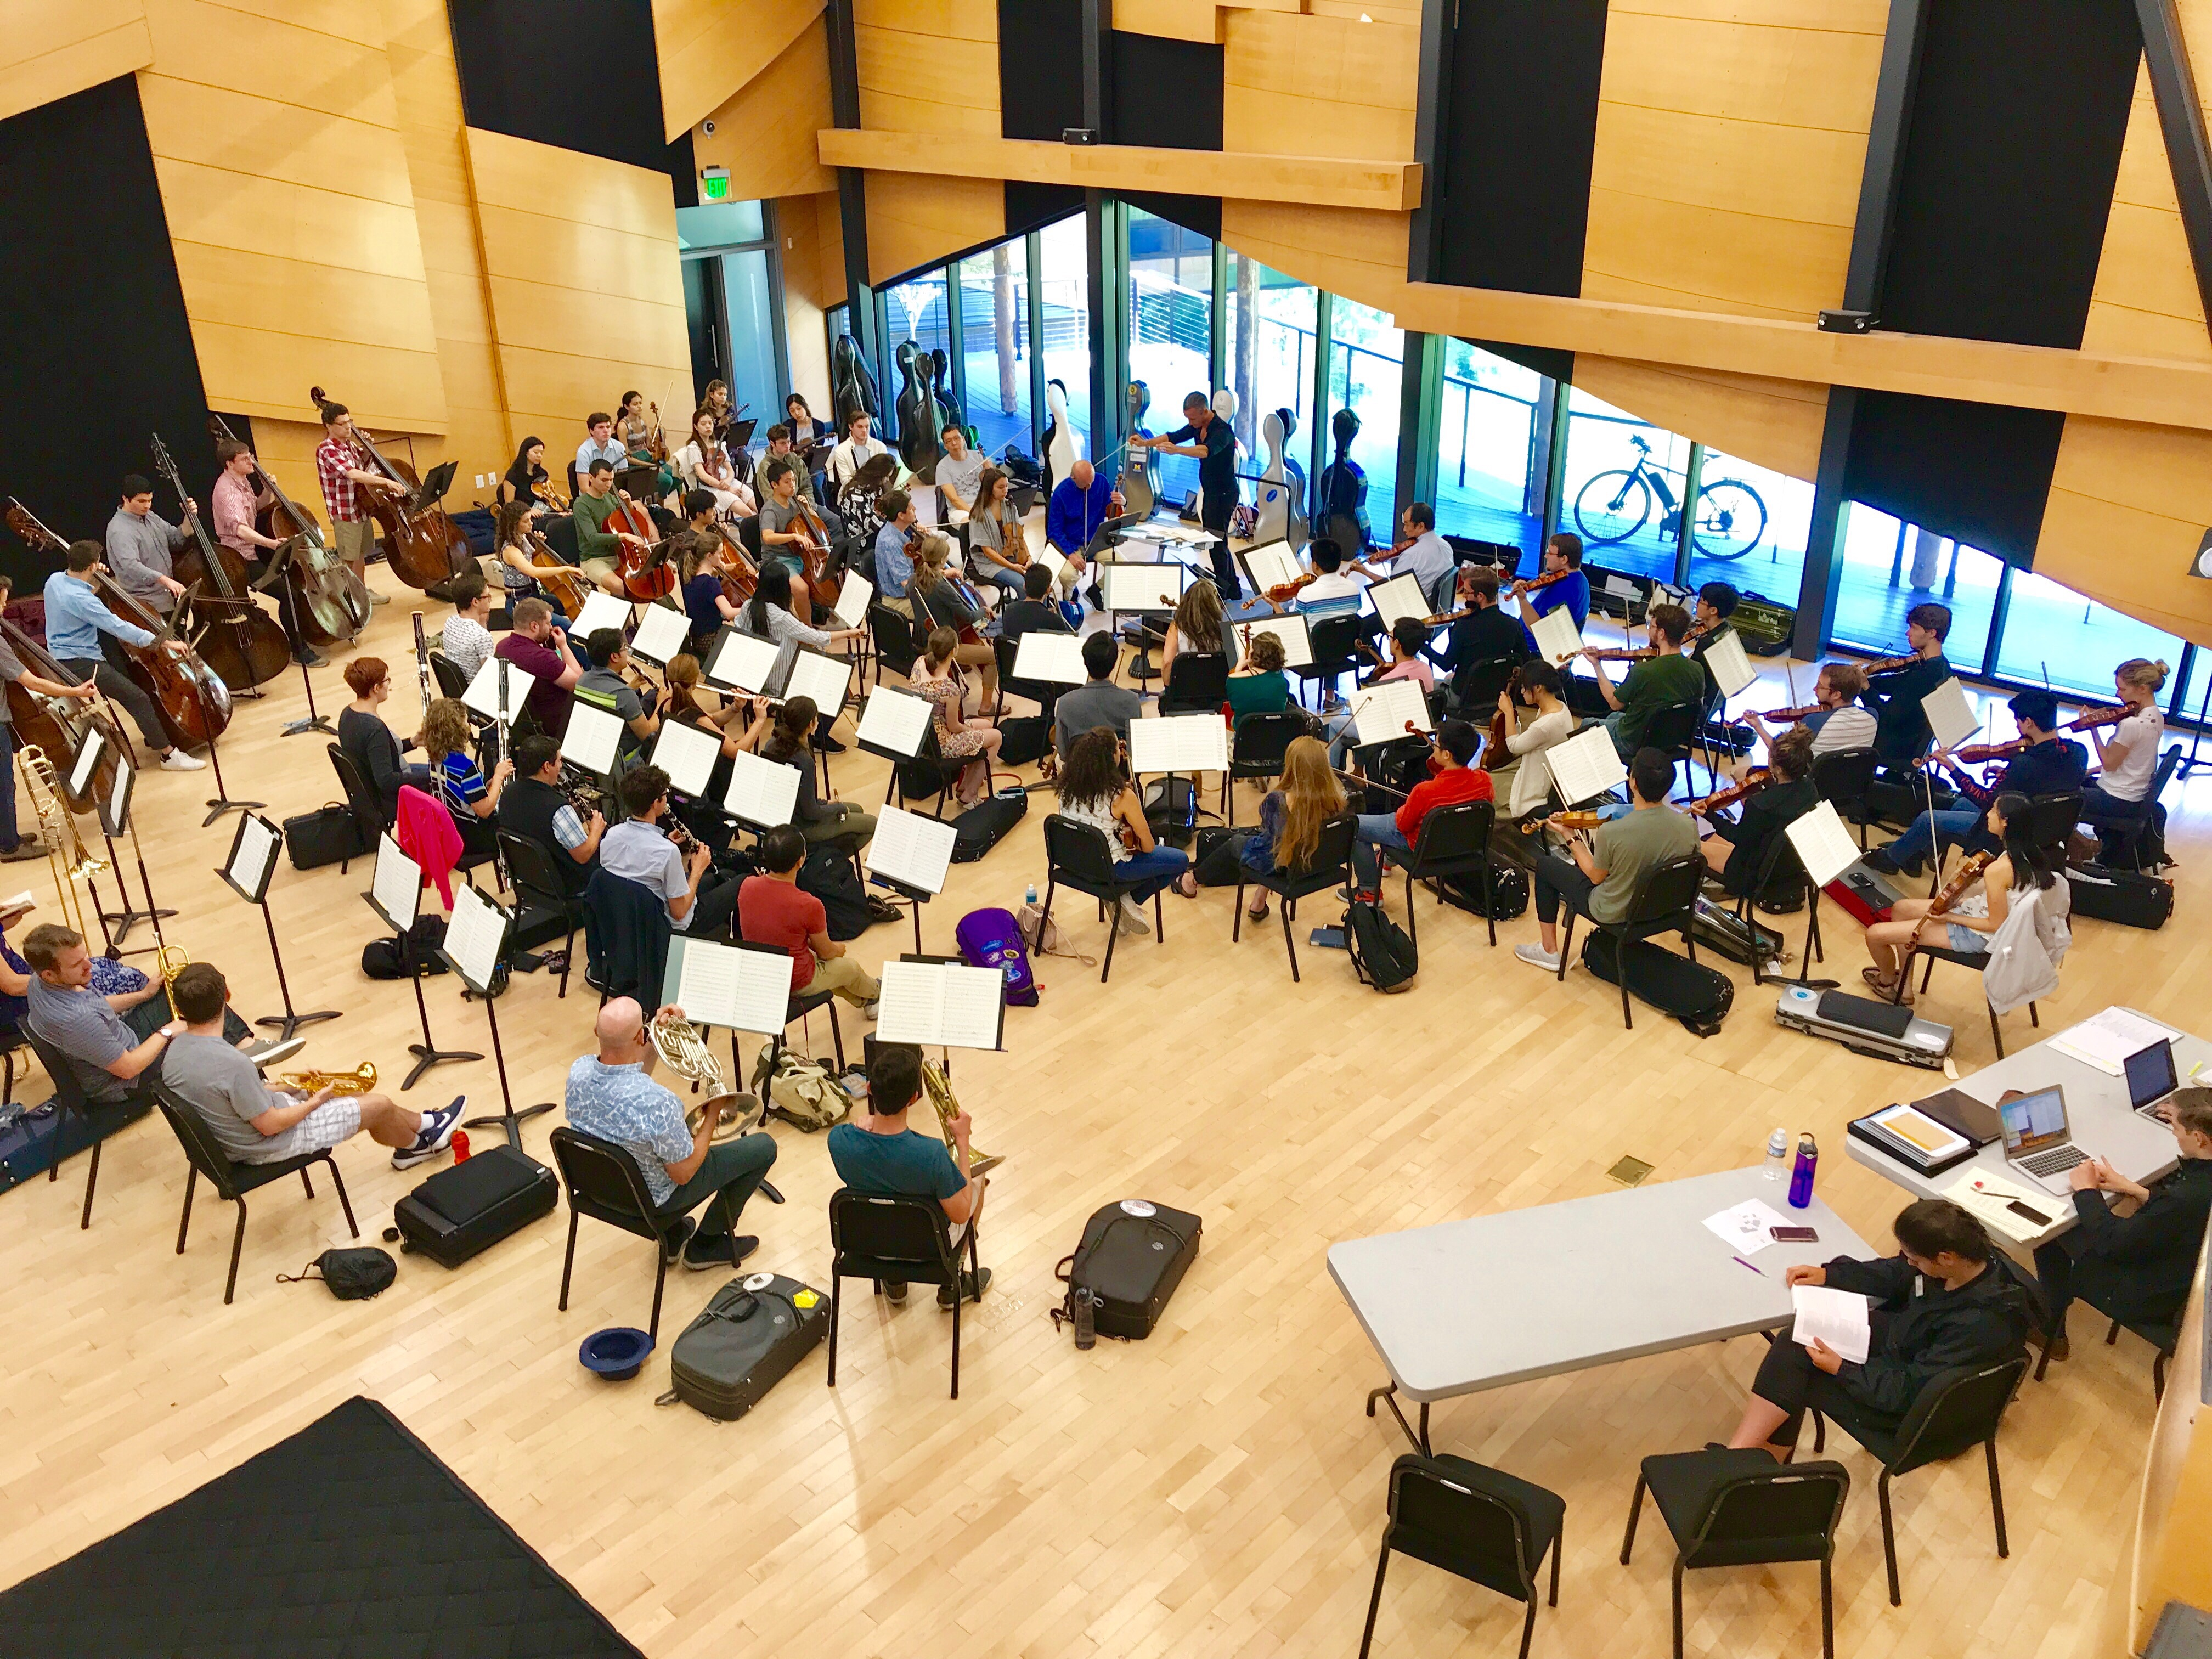 <p>The Aspen Chamber Symphony rehearsing at the Aspen Music Festival and School, conducted by Alexander Shelley.</p>